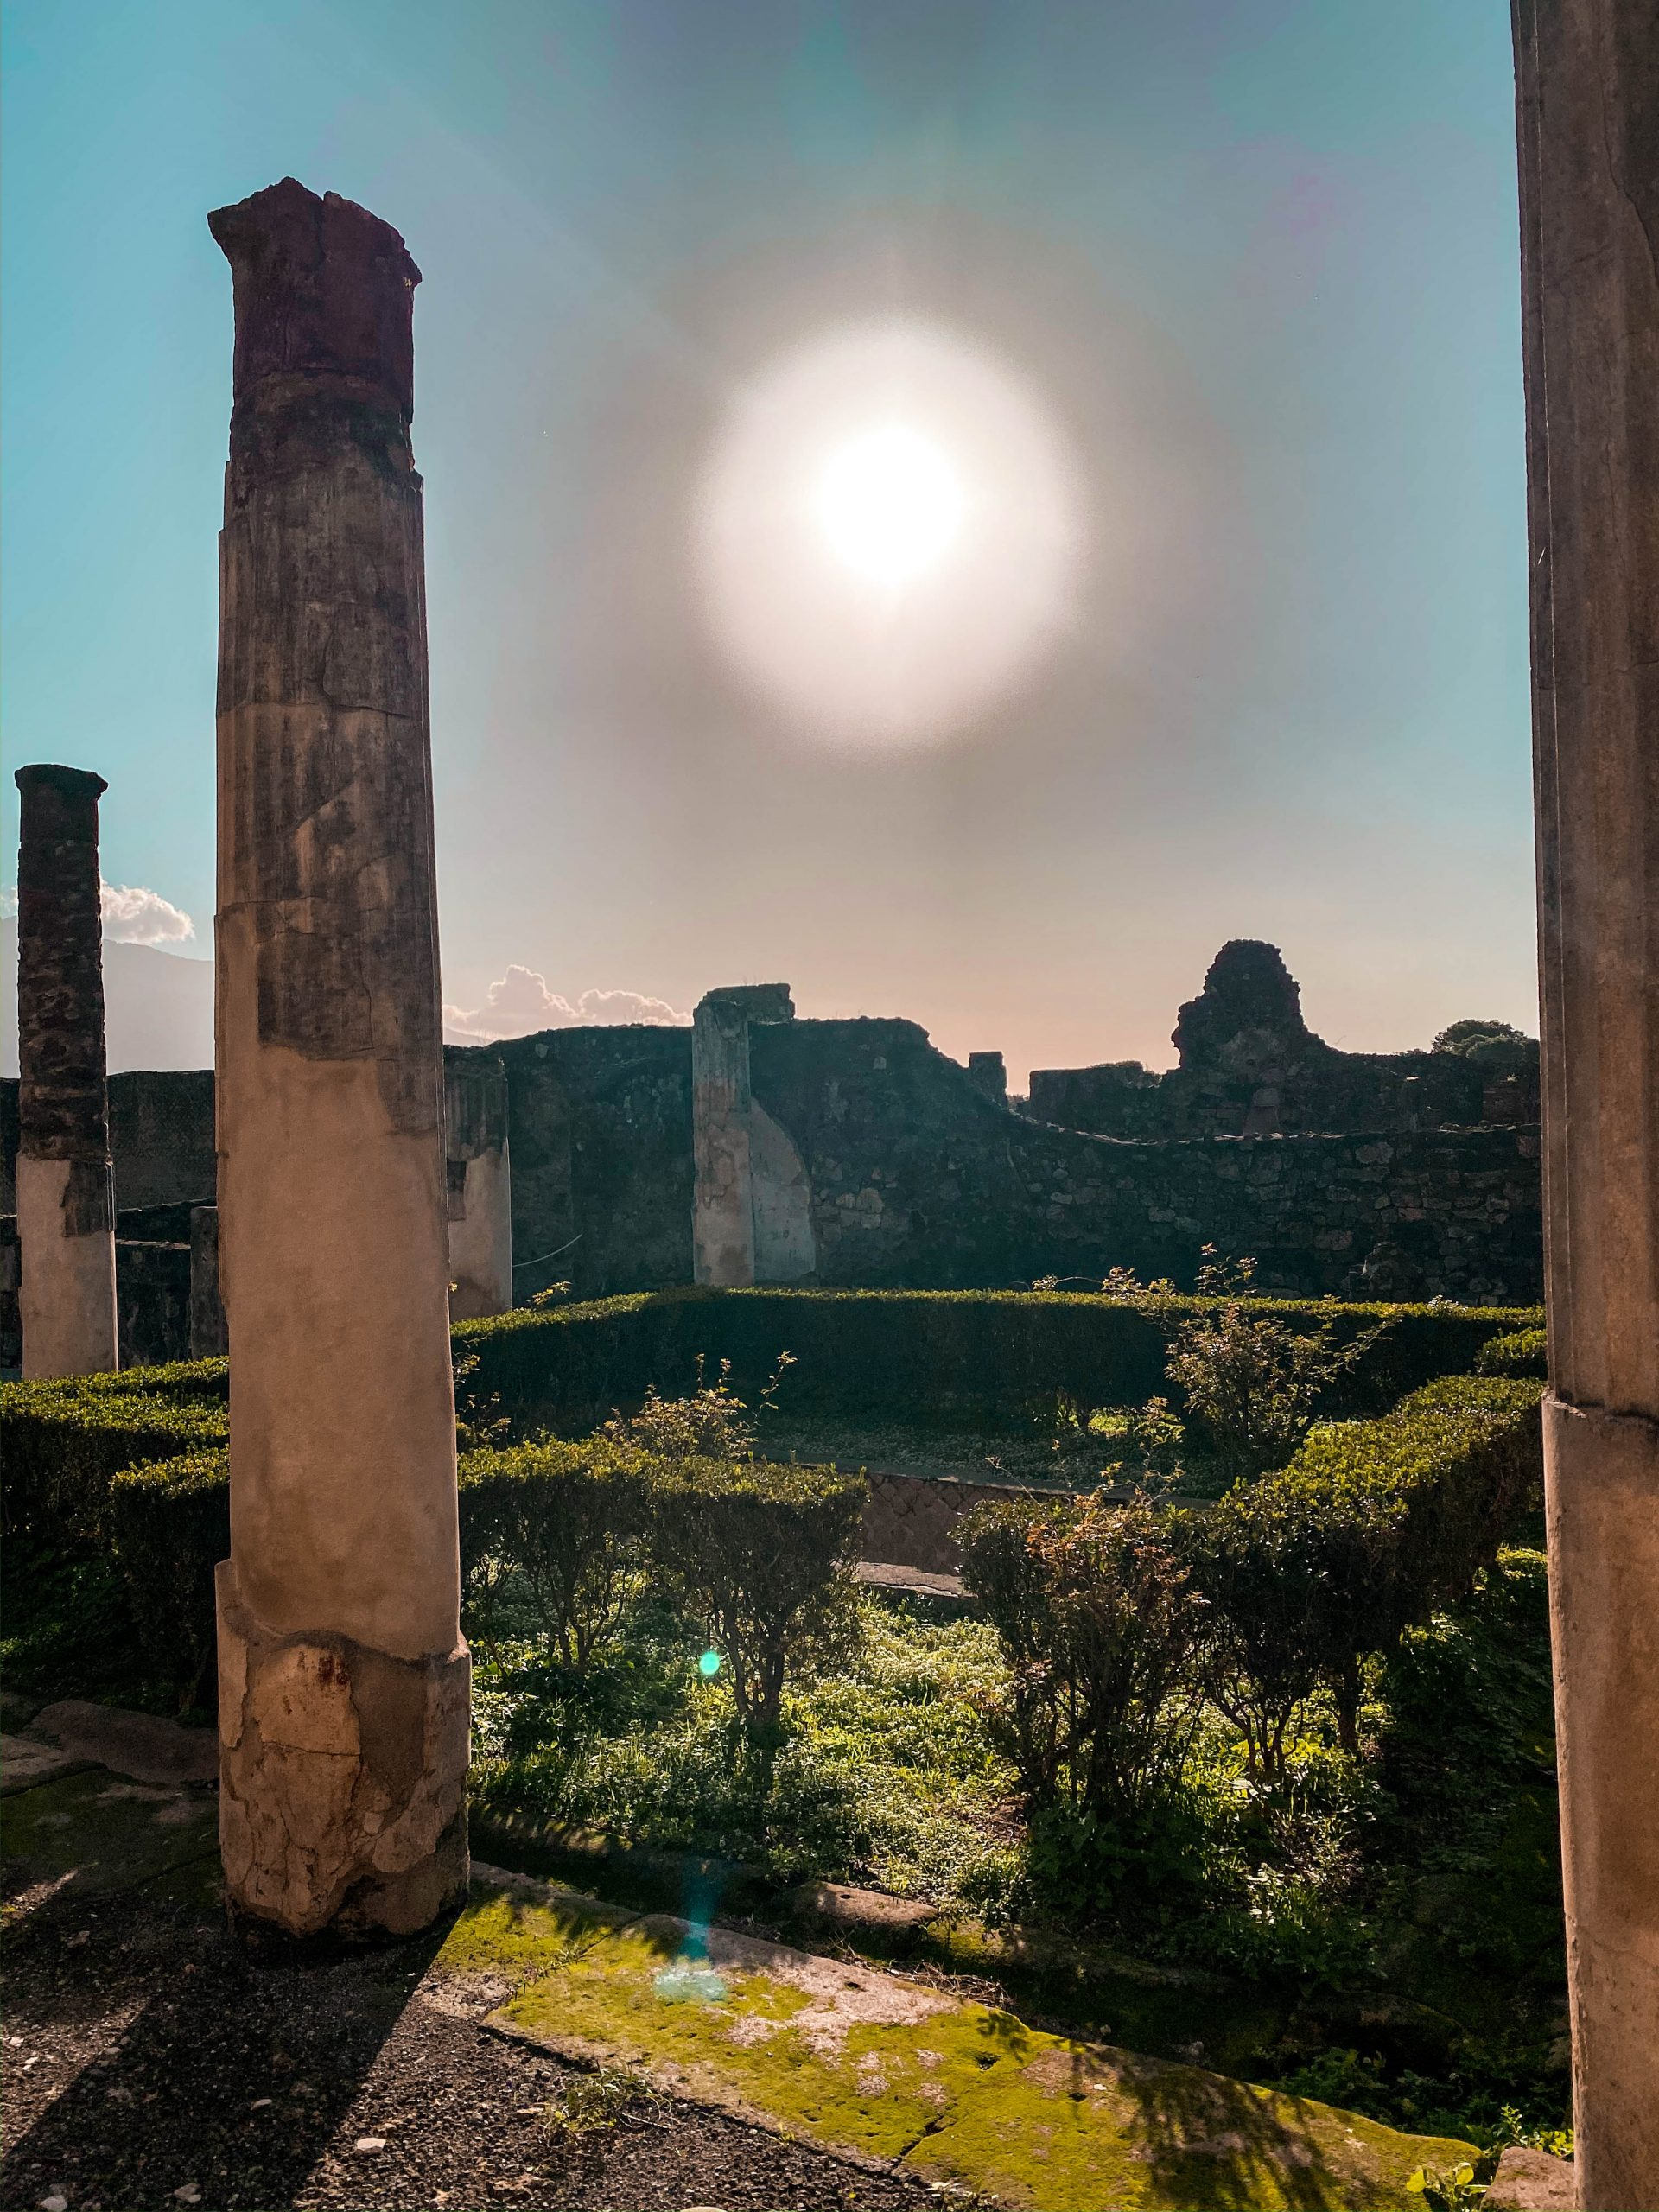 pompeii ruins ancient city italy neoclassicism neoclassical roman architecture UNESCO world heritage site how to visit pompeii from the amalfi coast